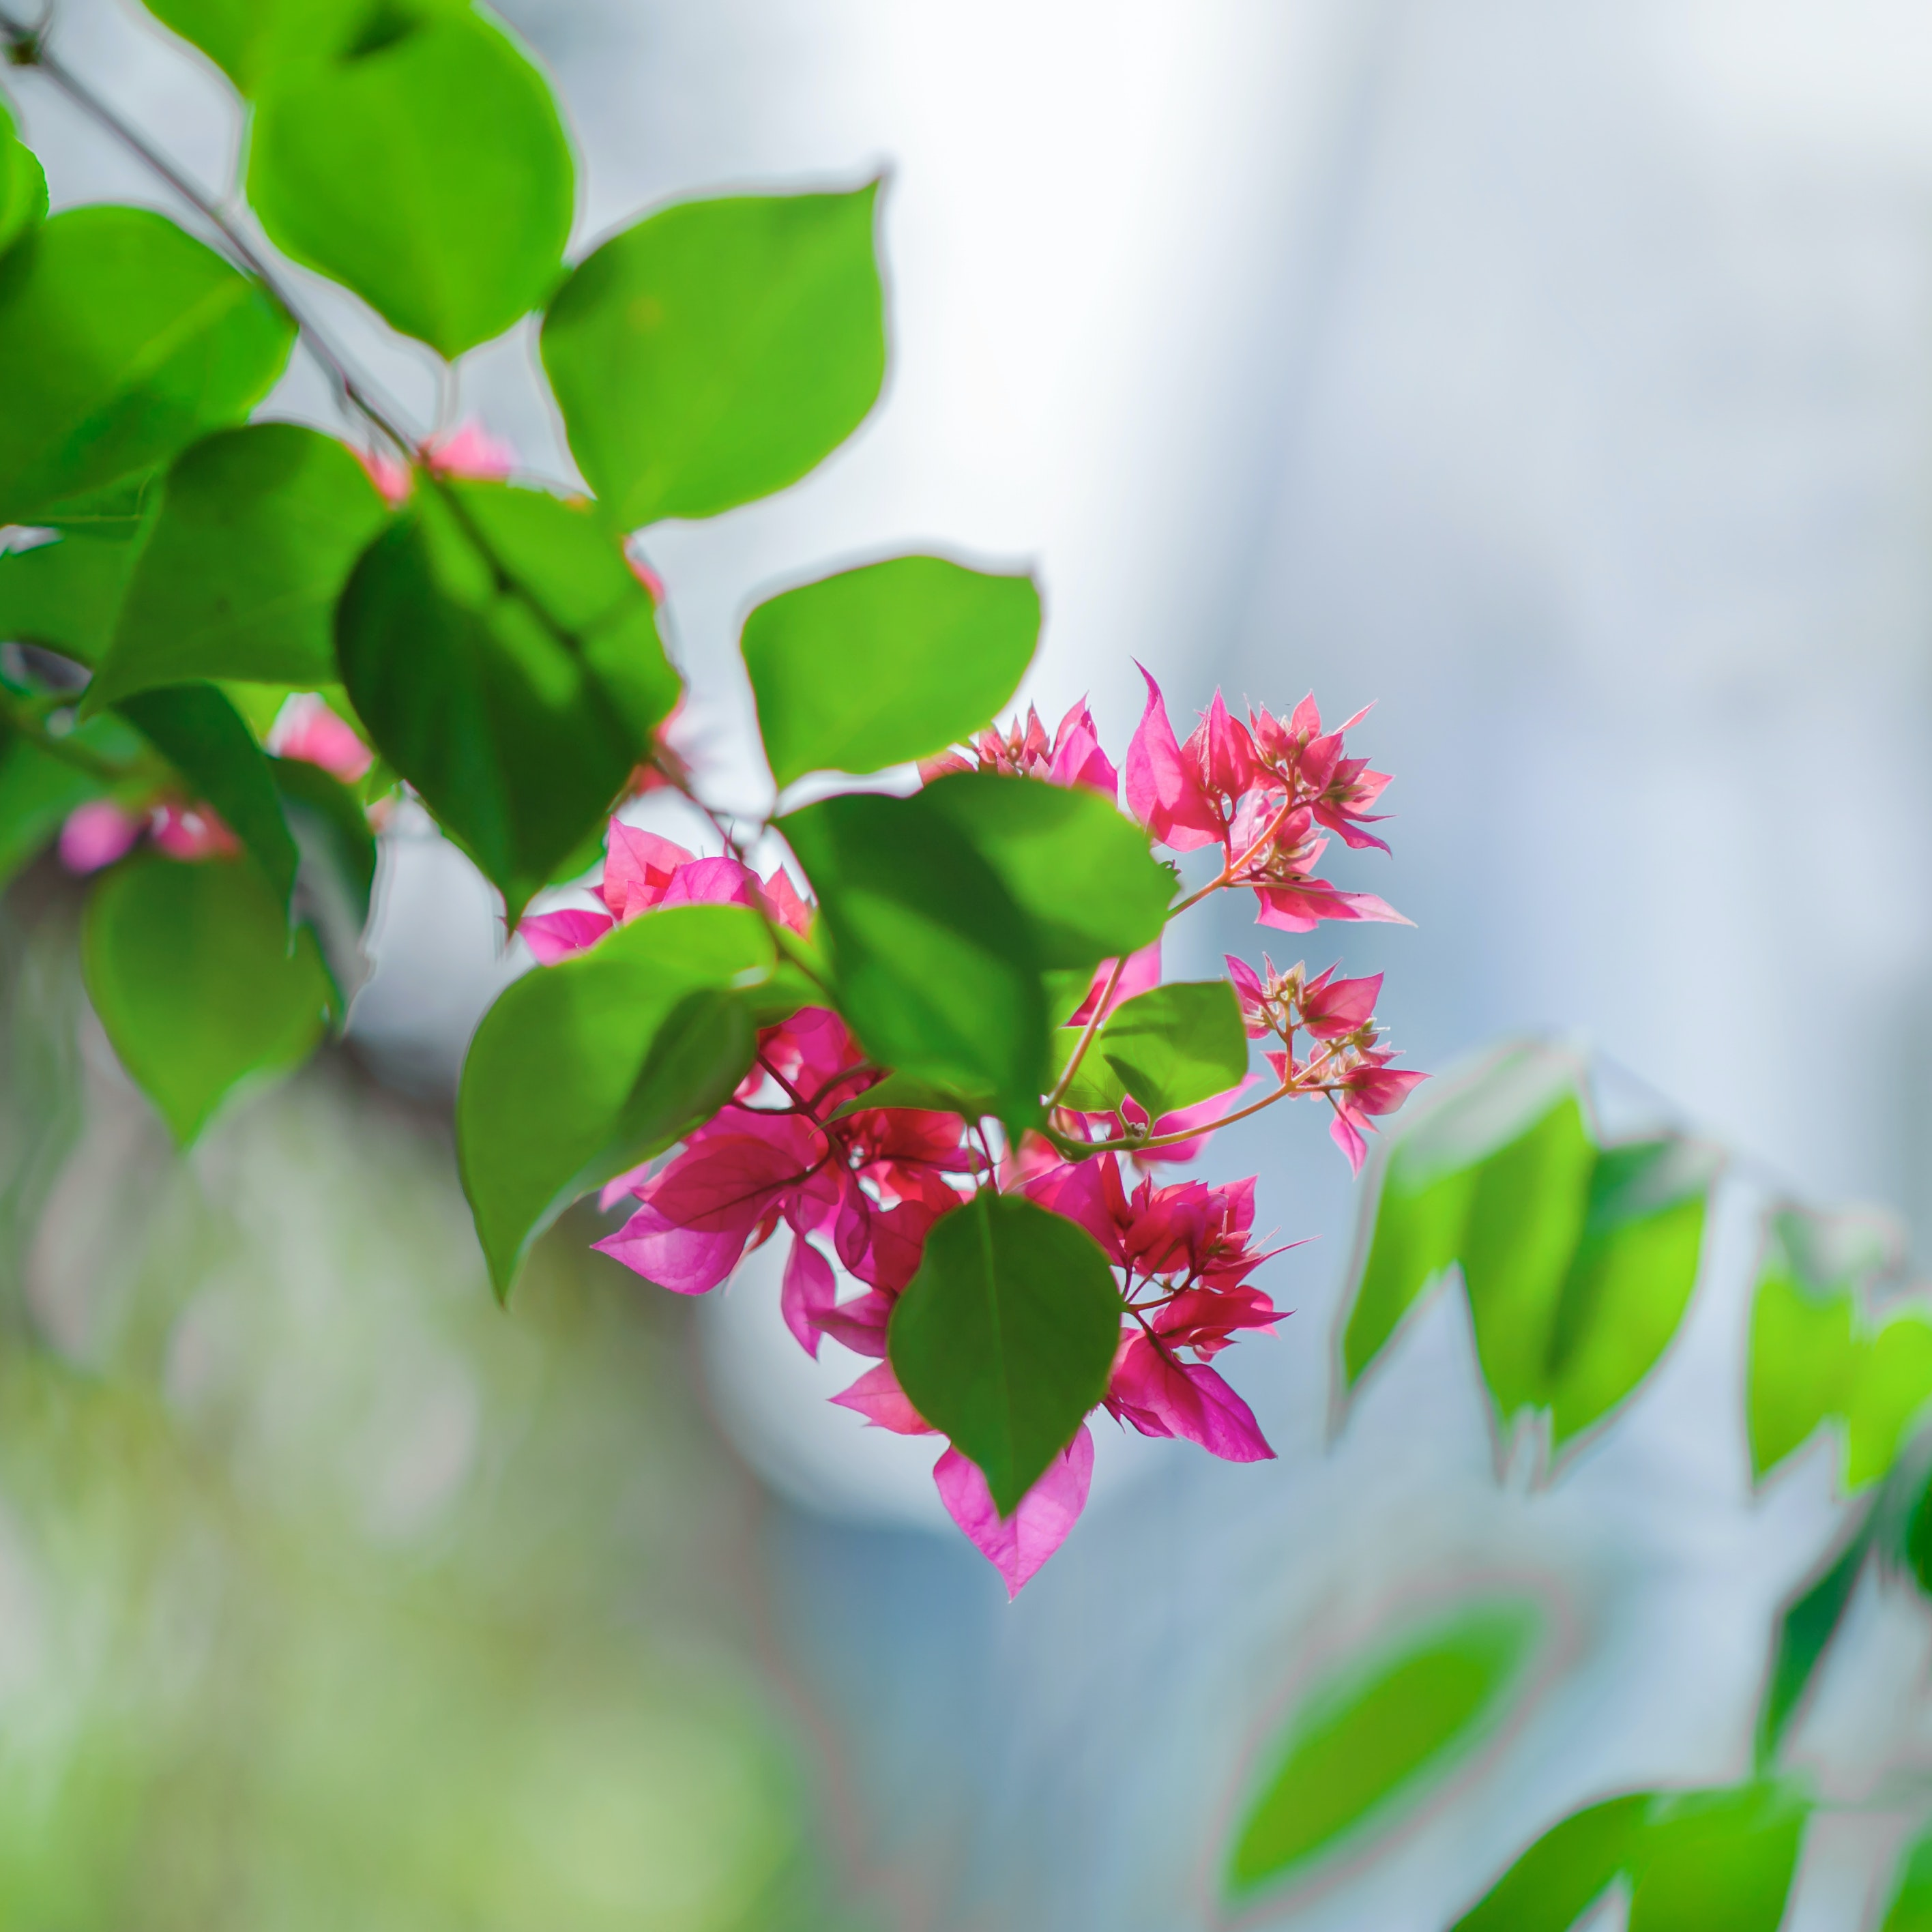 Close Up Photography Of Pink Flowers Near Leaves Free Stock Photo